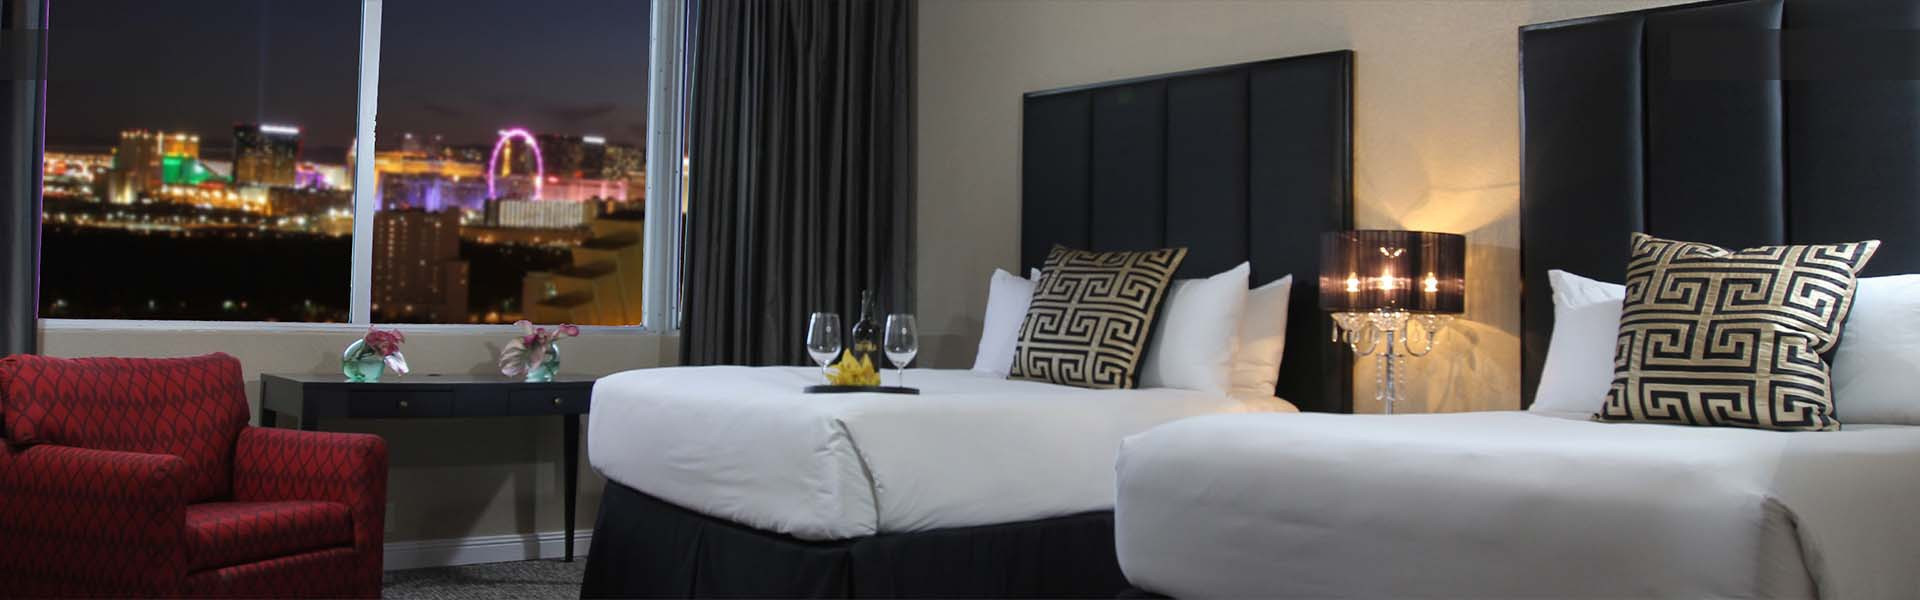 Las Vegas Hotel and Casino Overview   Luxurious Suites with Spectacular Views